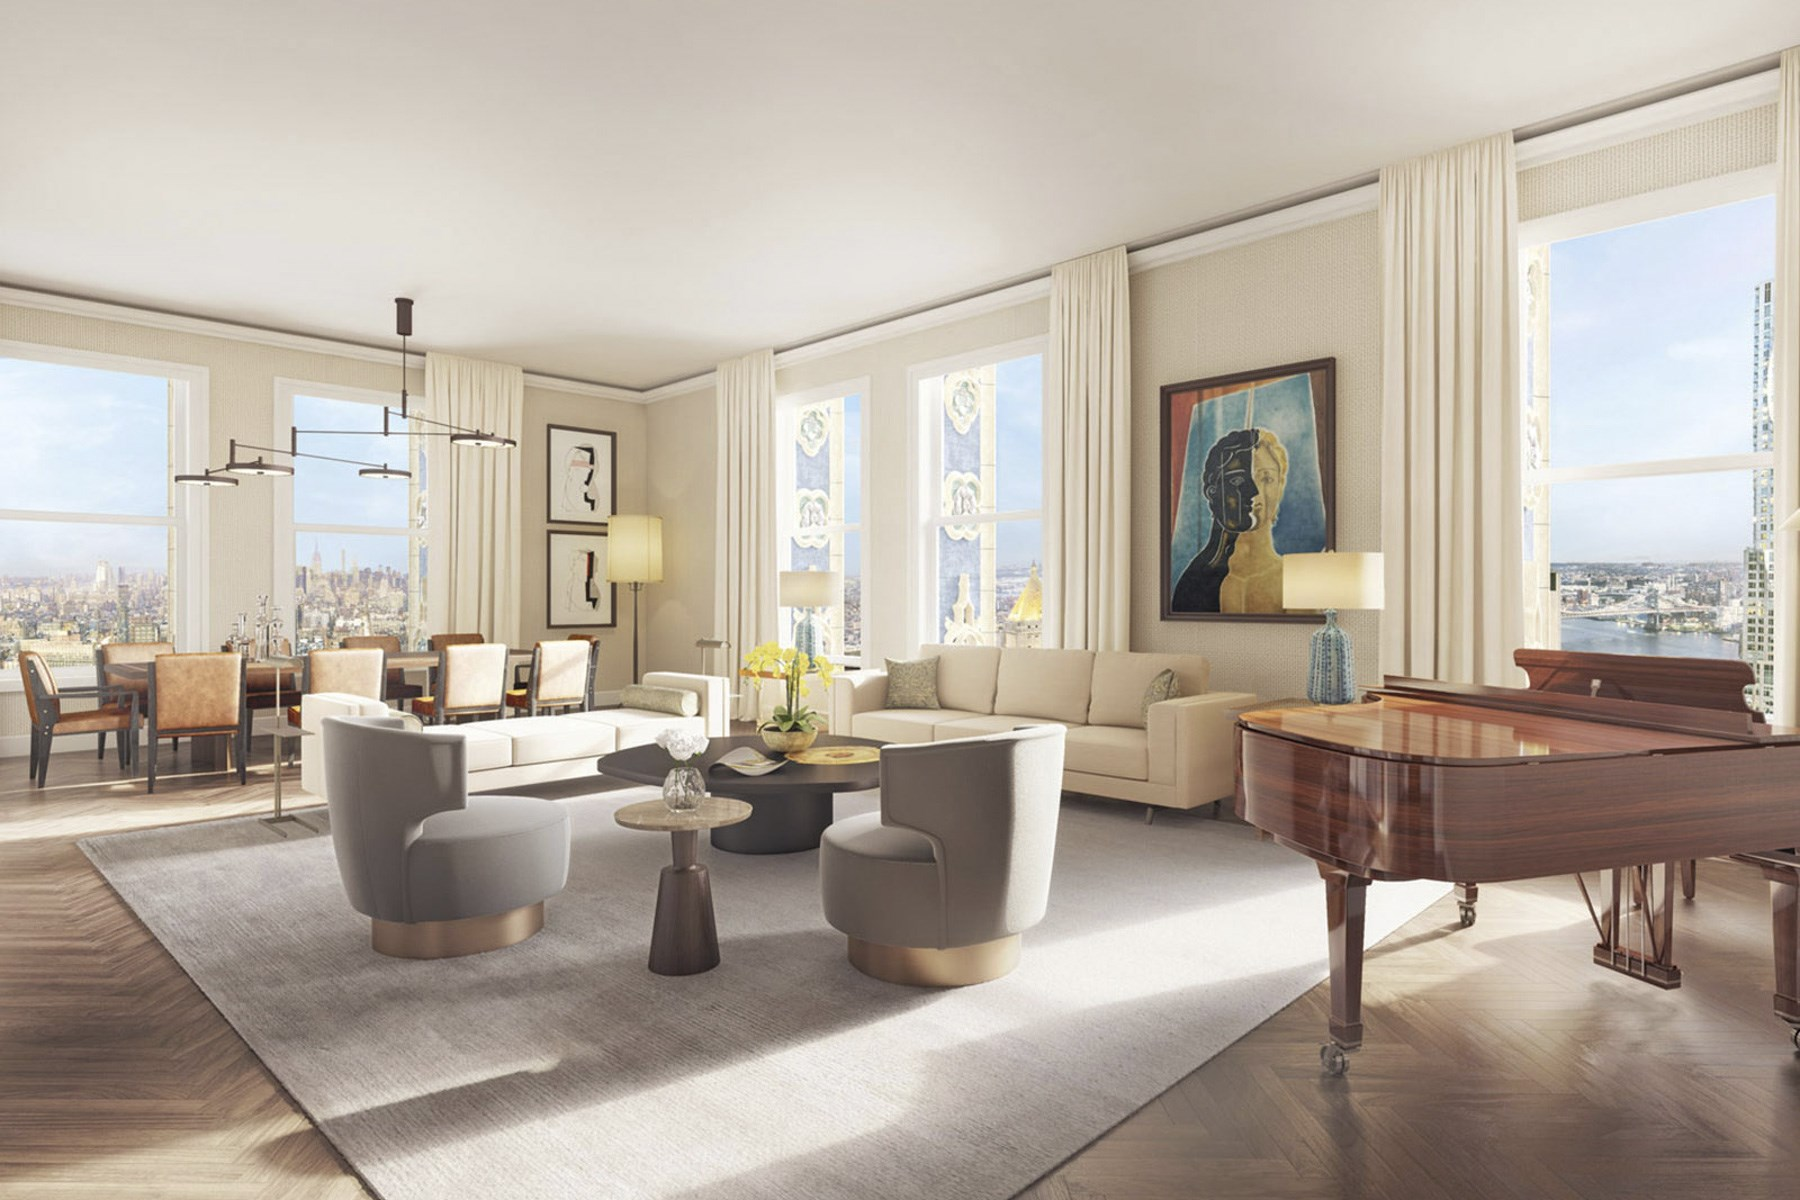 Appartement en copropriété pour l Vente à The Woolworth Tower Residences - 40AB 2 Park Place Apt 40AB, Tribeca, New York, New York, 10007 États-Unis